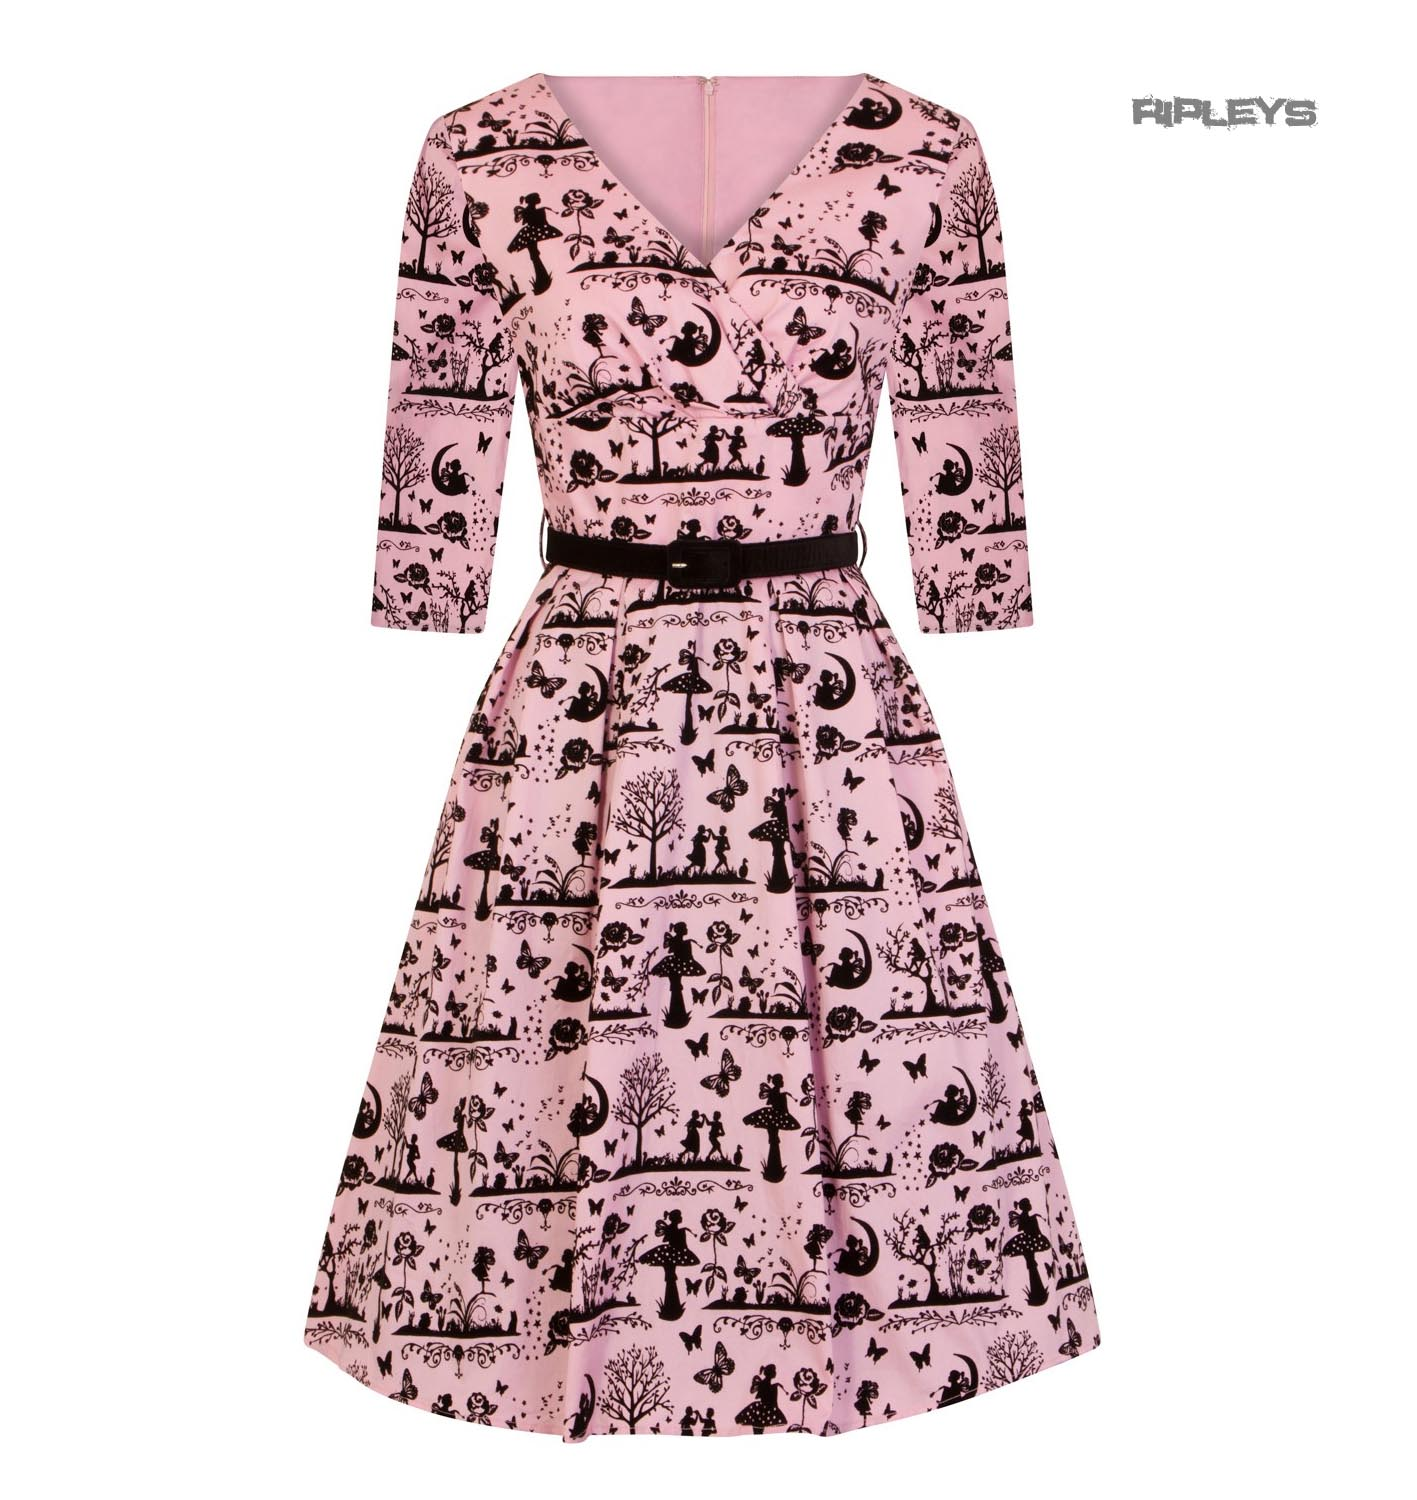 Hell-Bunny-40s-50s-Pin-Up-Dress-Fairy-Butterfly-ANDERSON-Black-Pink-All-Sizes thumbnail 18